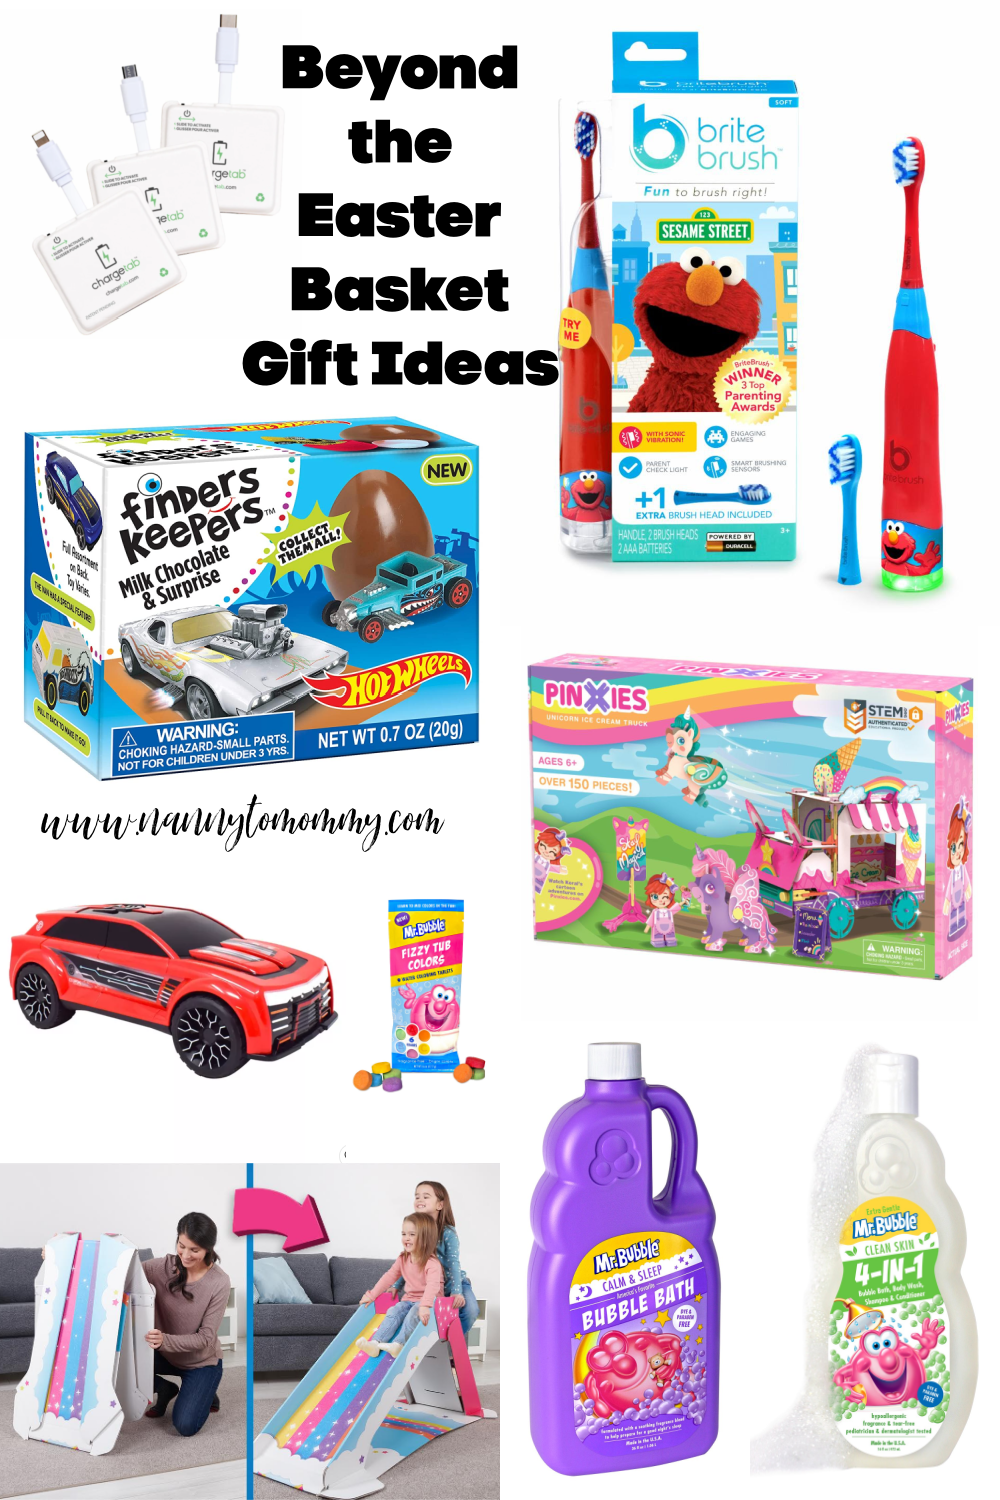 Untraditional Easter Basket Gift Ideas